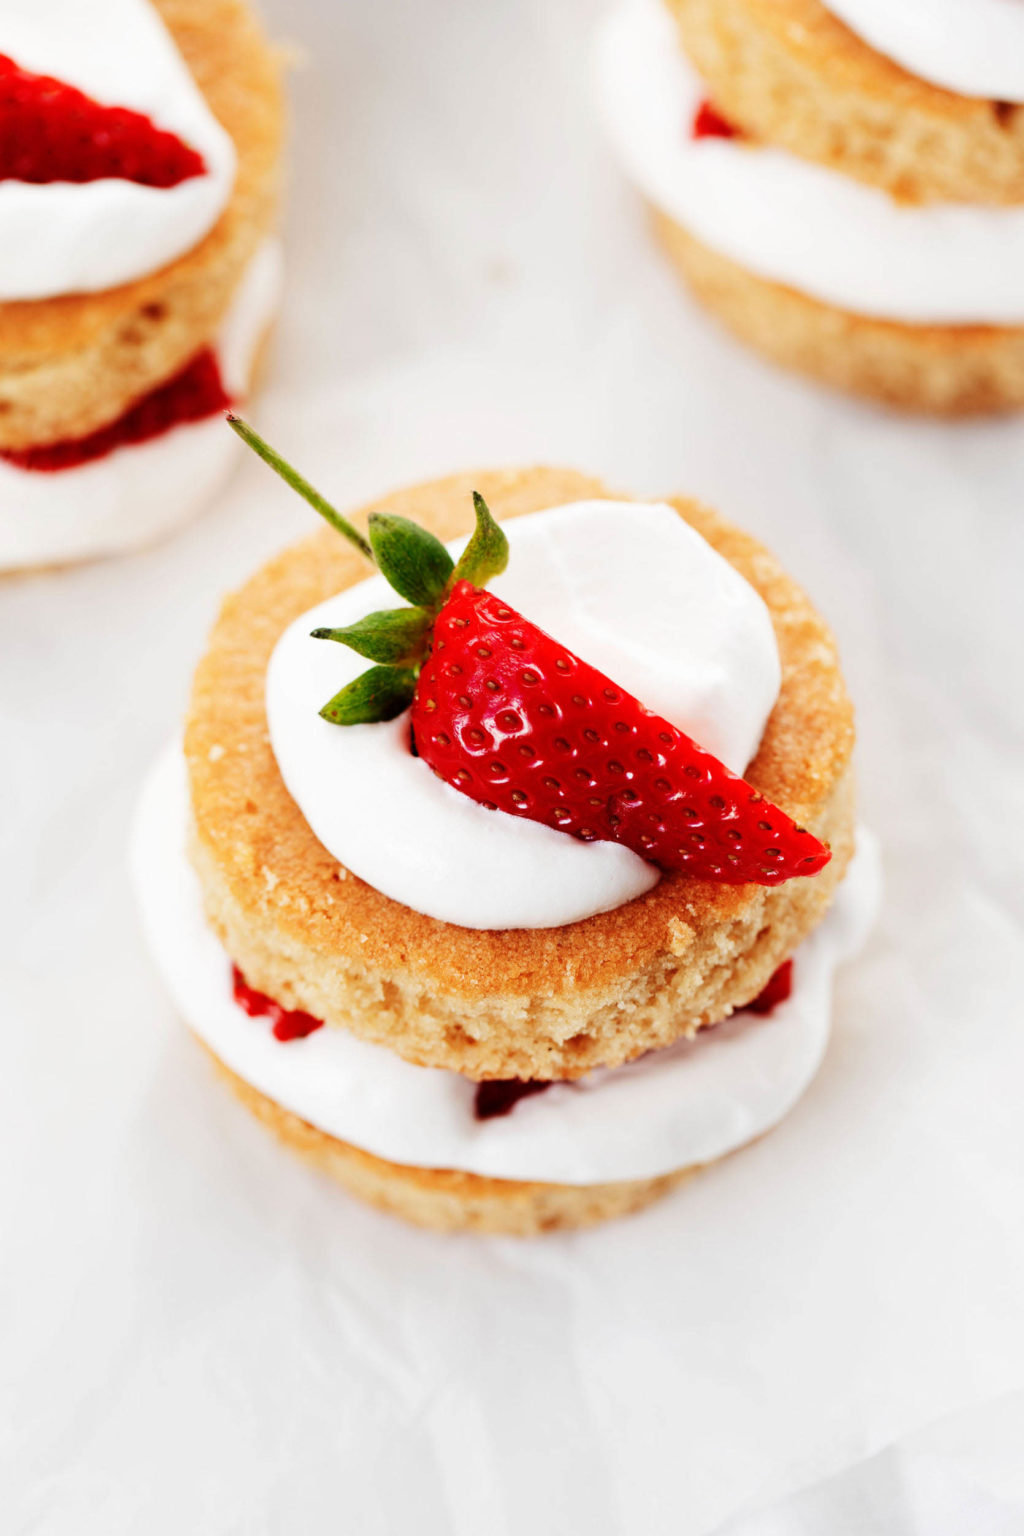 An overhead image of vegan strawberry shortcakes that are resting on a white surface. They've been decorated with whipped cream and slivers of fresh strawberry.